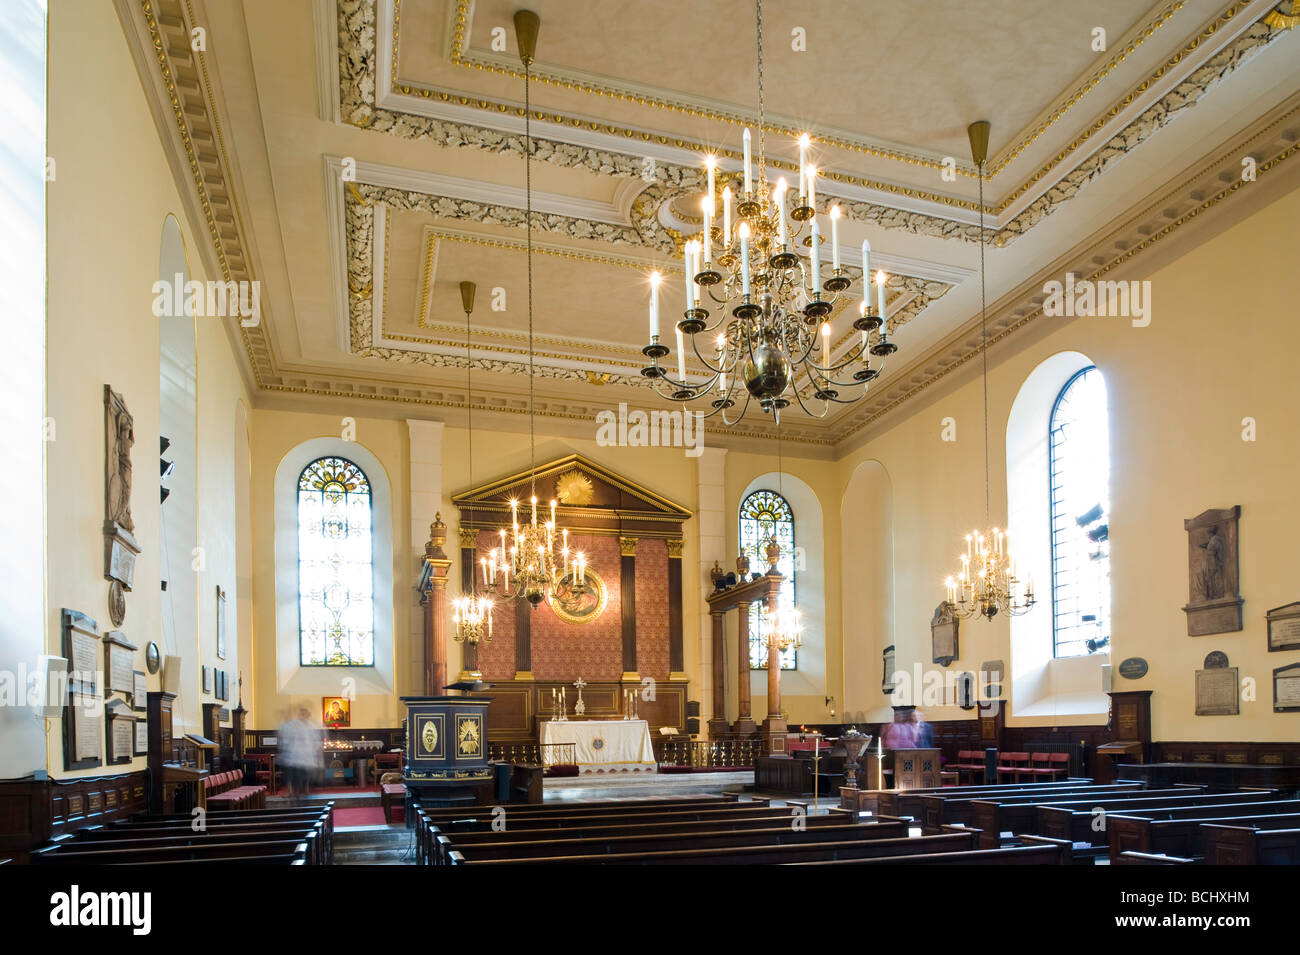 Interior Of St Paul S Church Covent Garden London United Kingdom Stock Photo Royalty Free Image